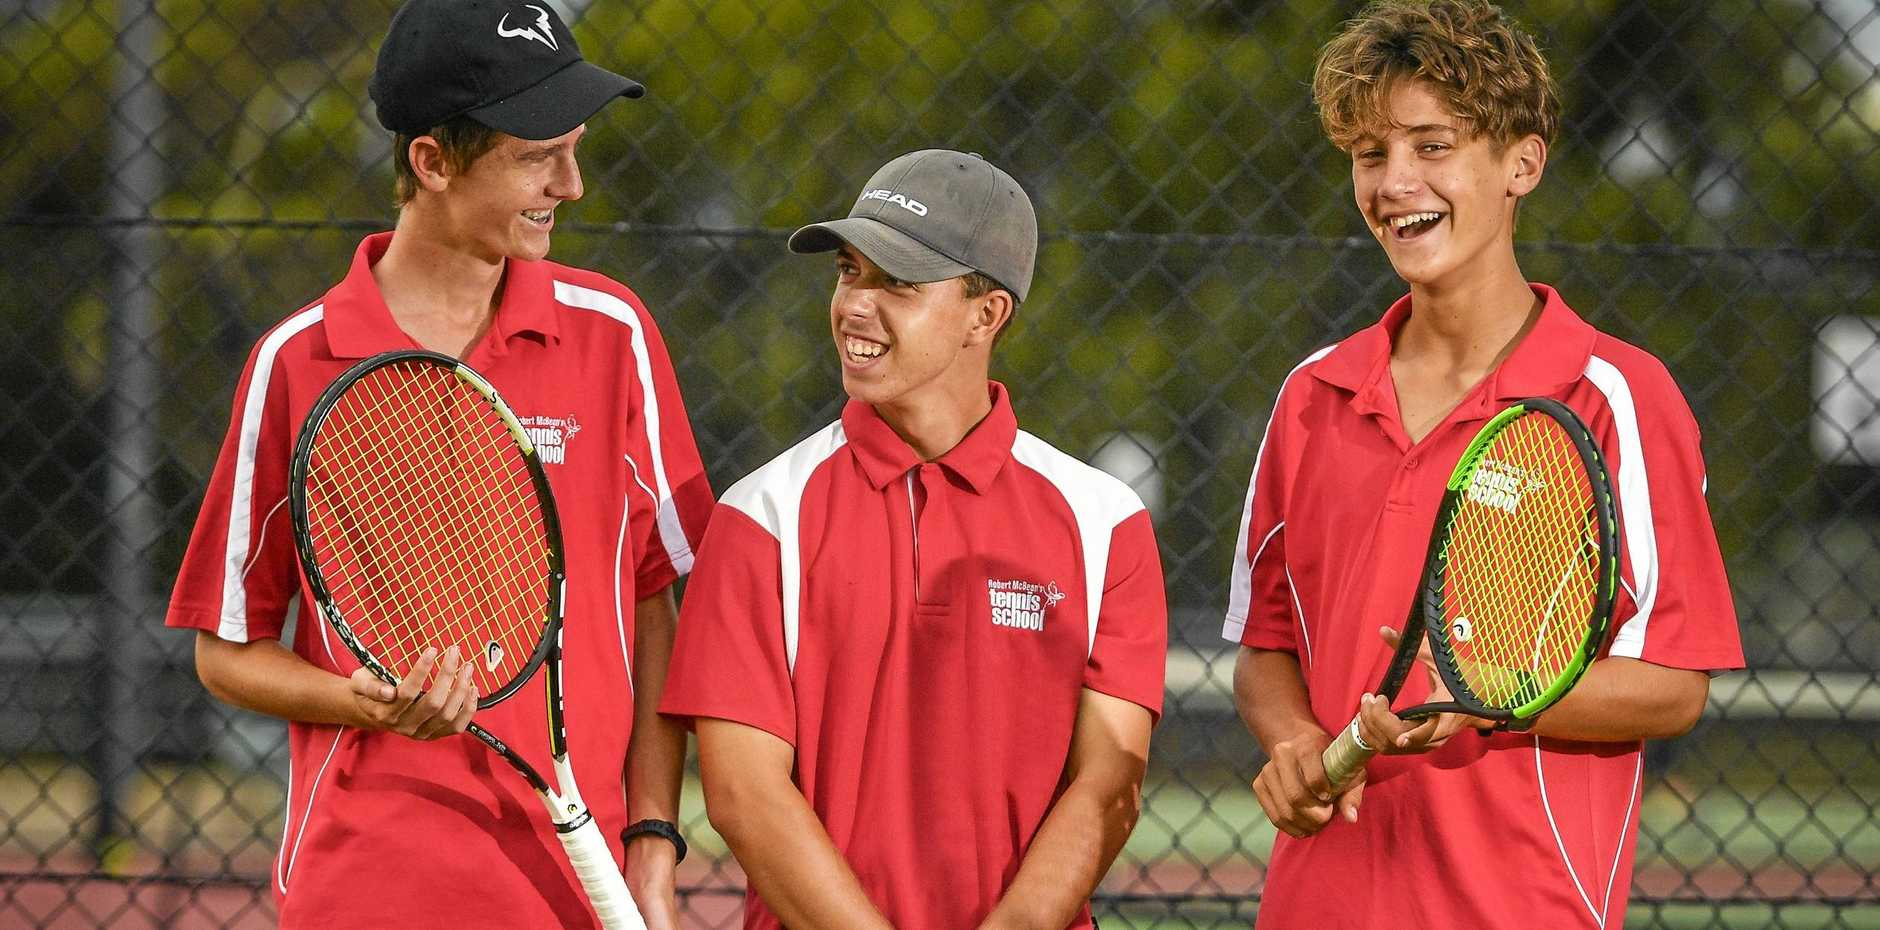 ACES: Gladstone players Thomas Llewellyn, Nick Crane and Dylan Price will play in the QSS Girls and Boys Tennis Champs